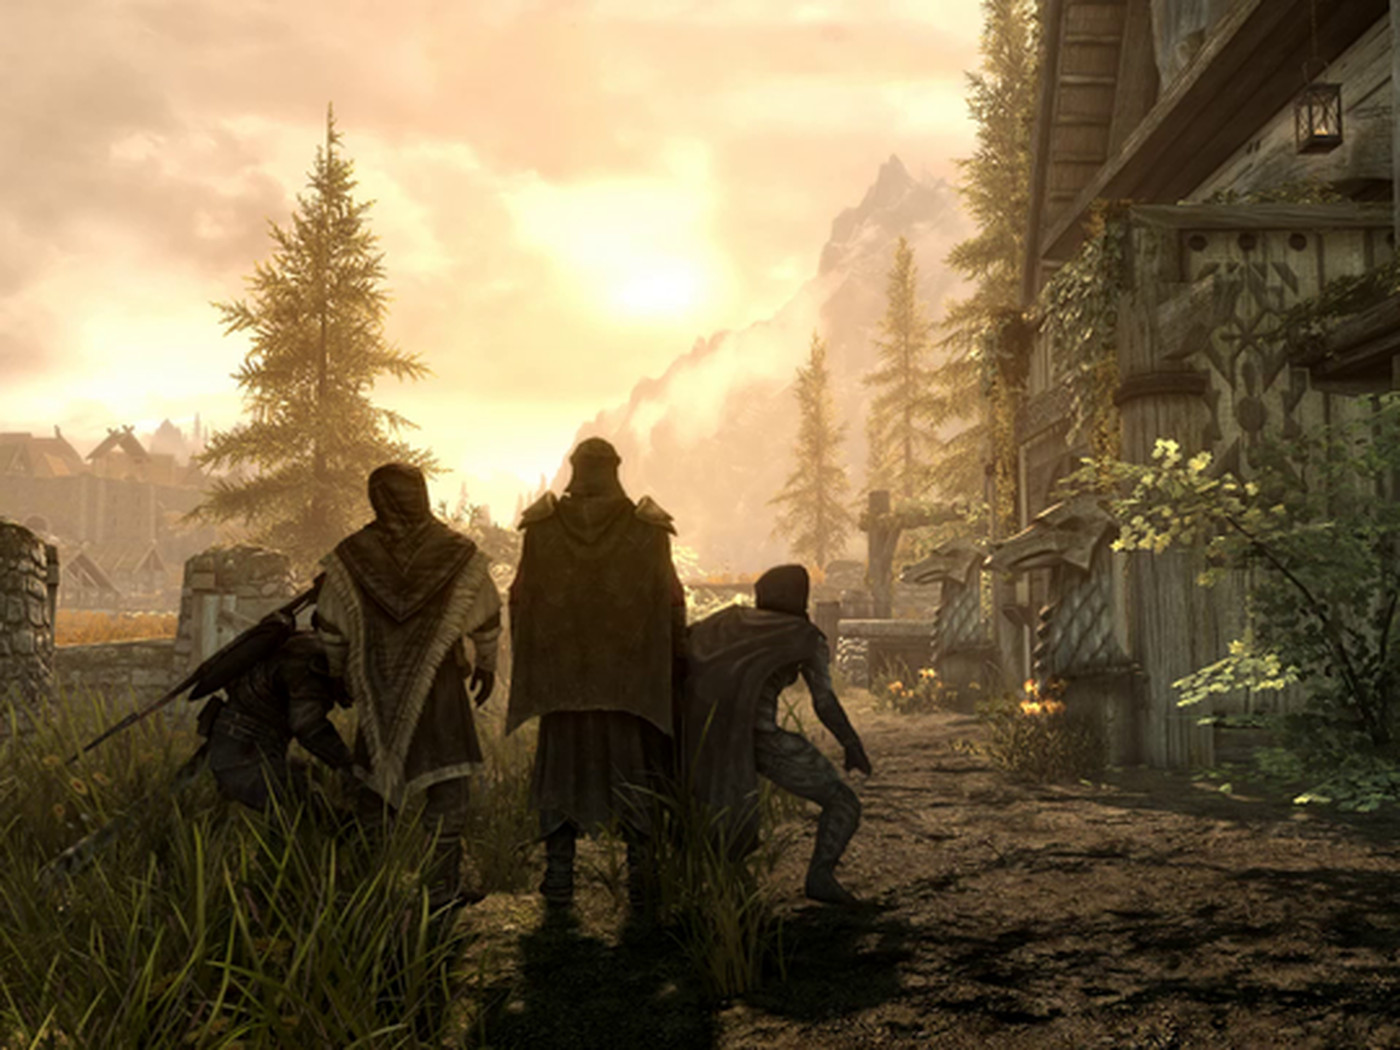 Skyrim Together multiplayer mod nears full release at last - Polygon